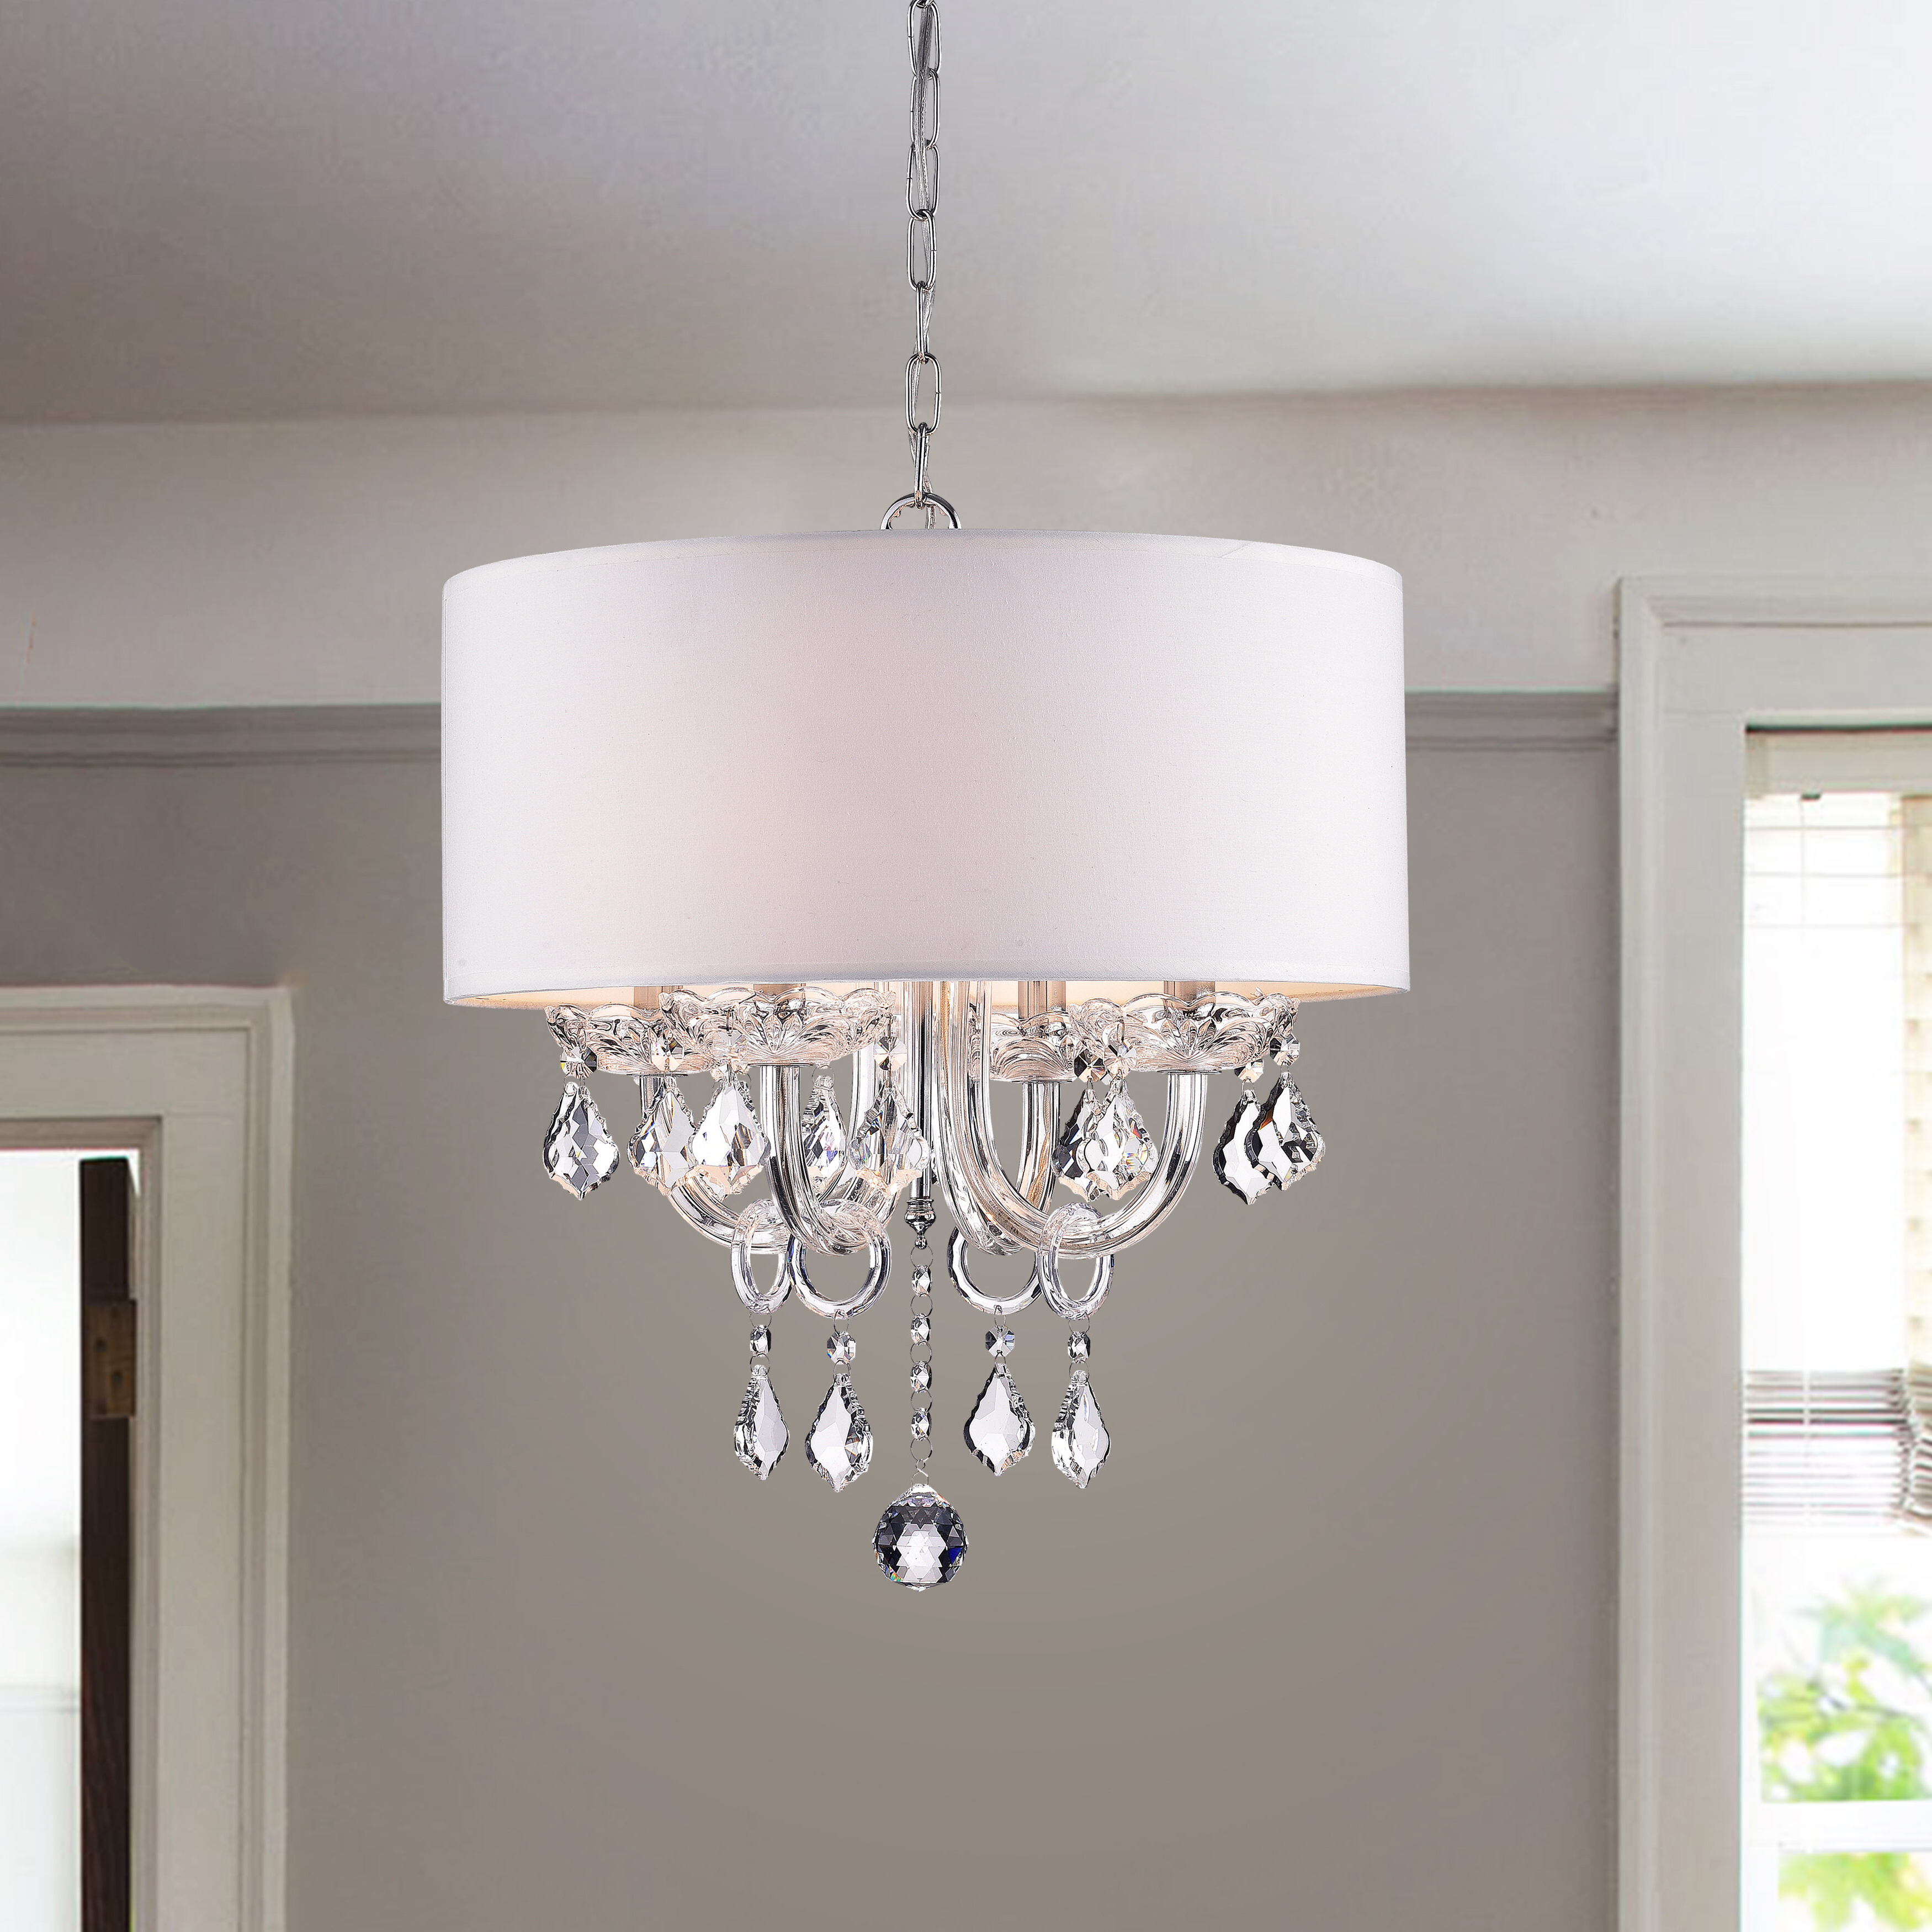 2019 Dunaghy 4 Light Chandelier With Alverez 4 Light Drum Chandeliers (View 1 of 20)